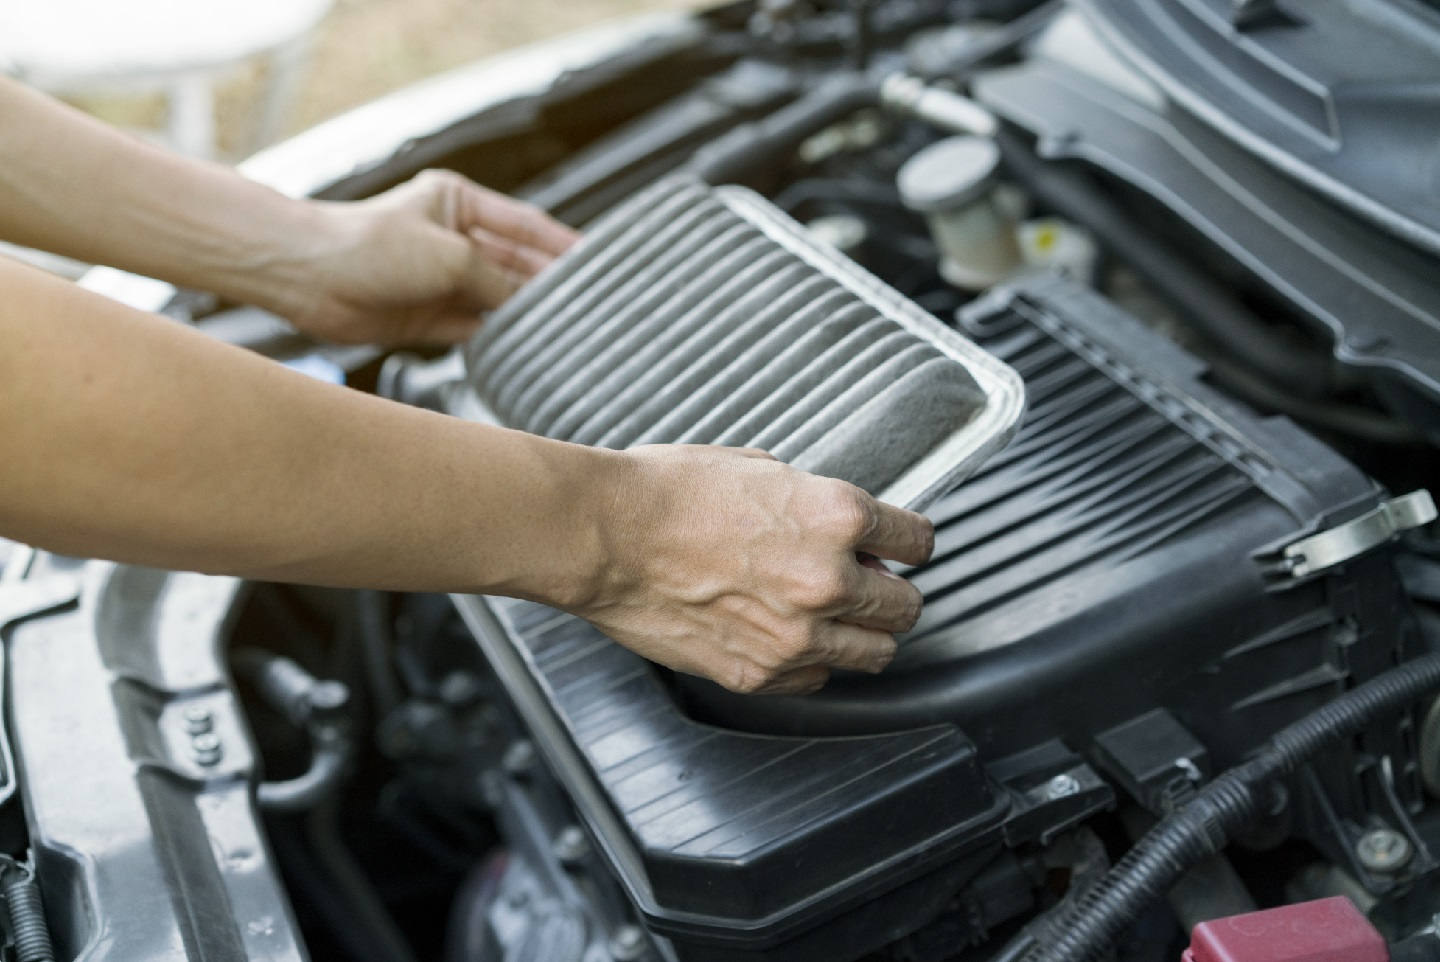 Getting to Know Your Vehicle's Filters: Air, Oil, Transmission, Fuel, Cabin